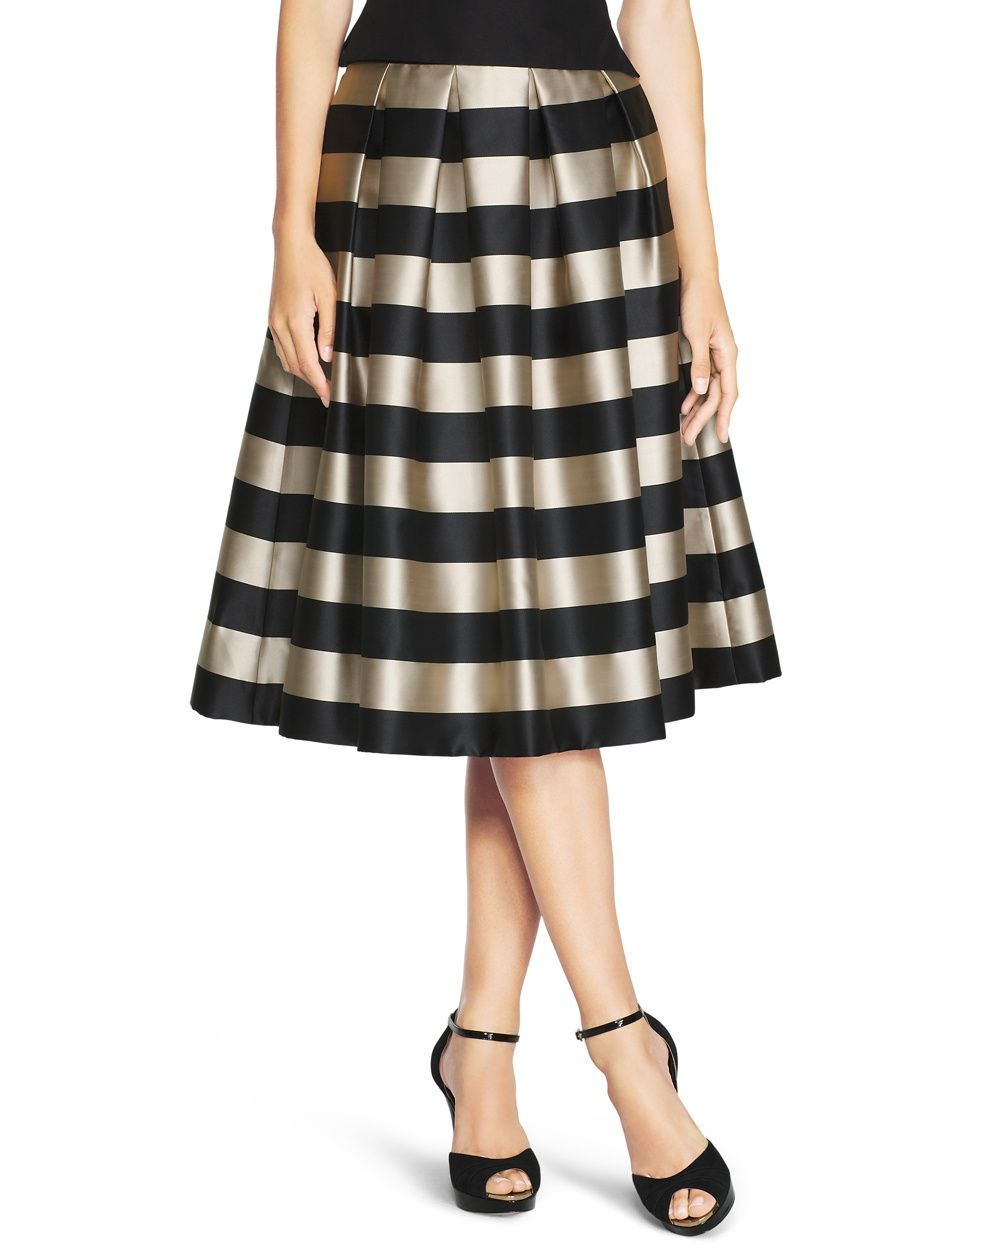 f37b5c41b2 Striped Taffeta Midi Skirt. Shop Skirts & Dresses for Women - White  House | Black Market ...